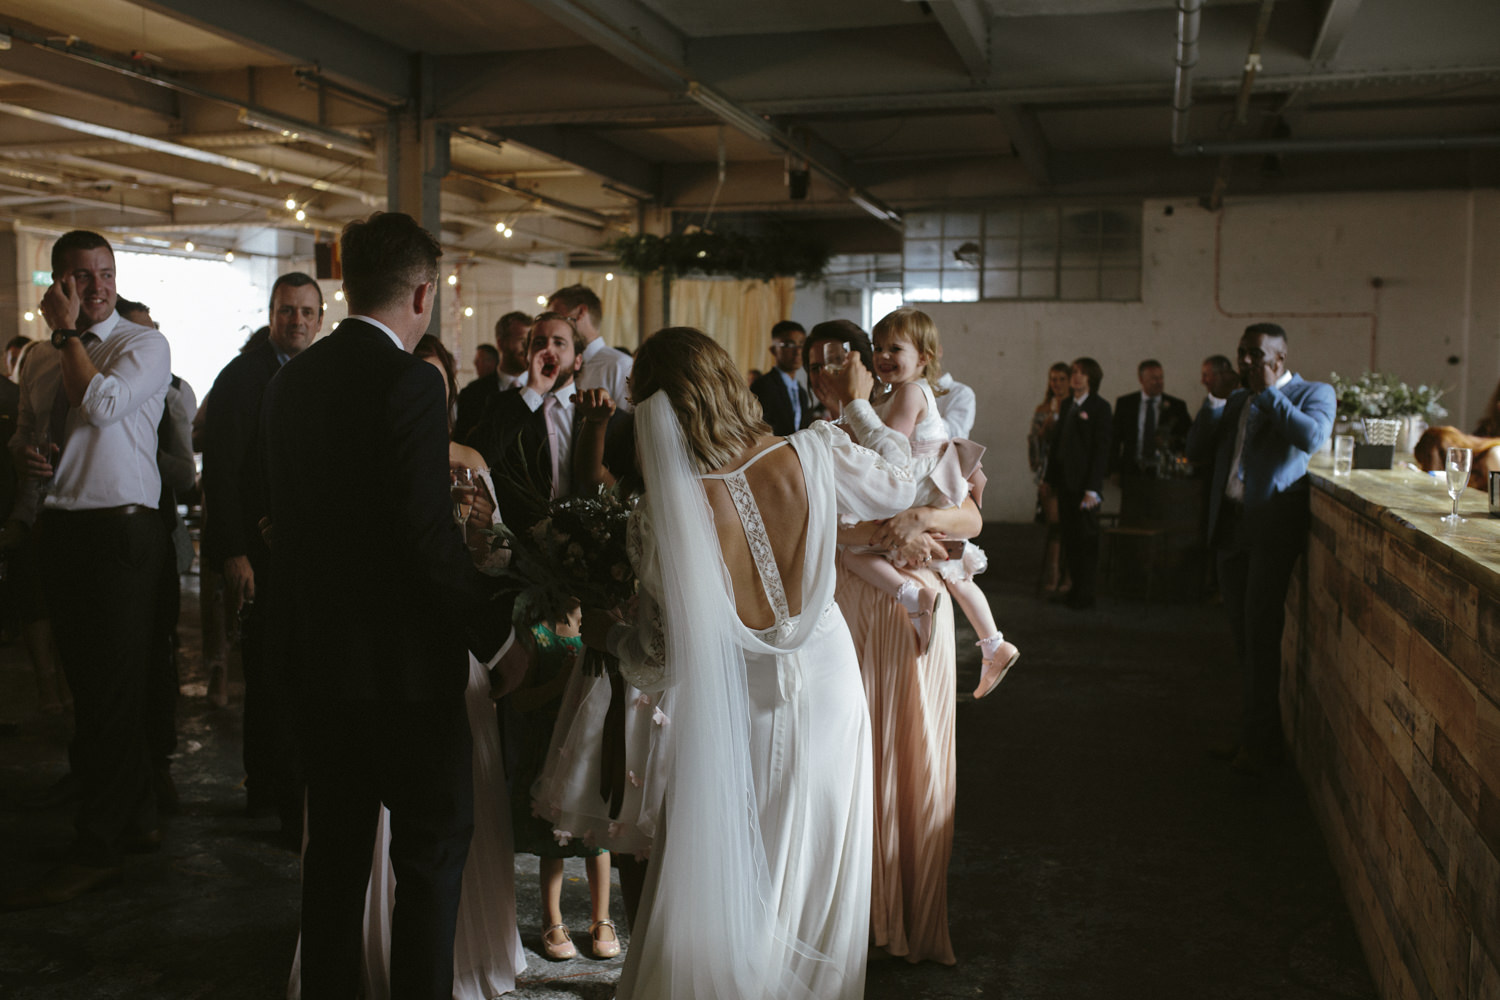 trafalgar-warehouse-sheffield-wedding-68.jpg